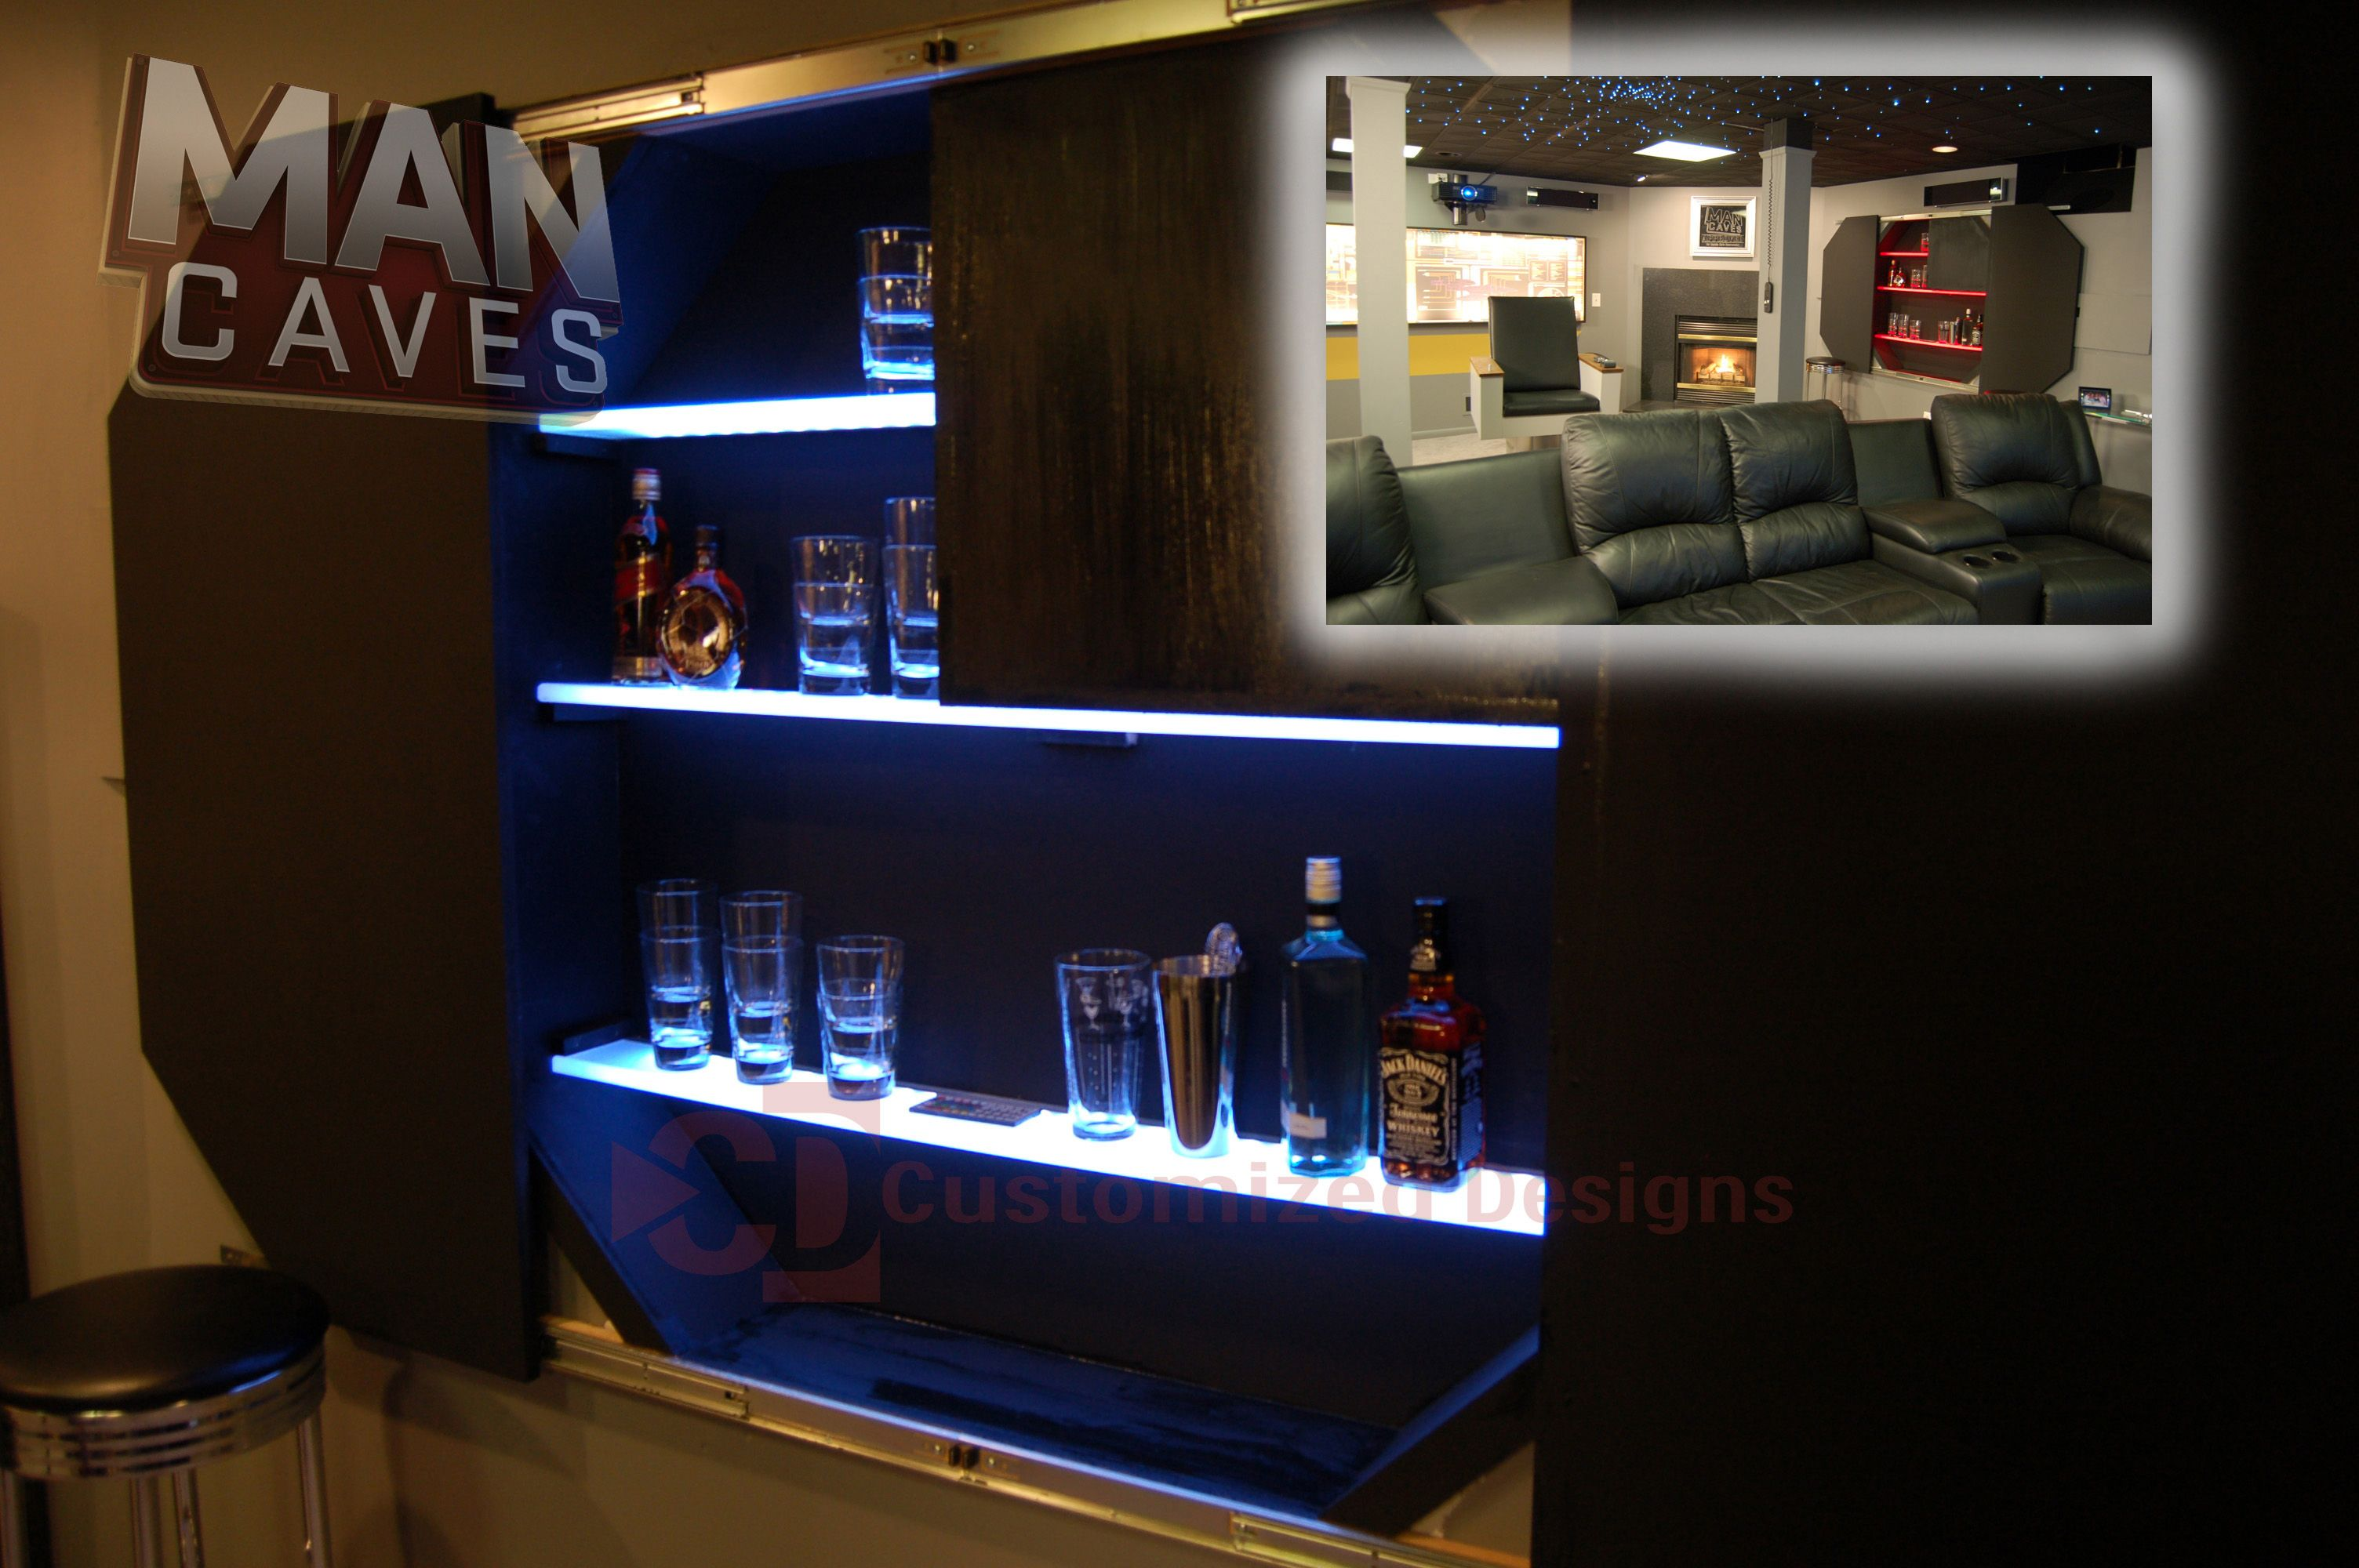 Man Cave Small Bar : Amazing hat rack ideas design for your sweet home man caves